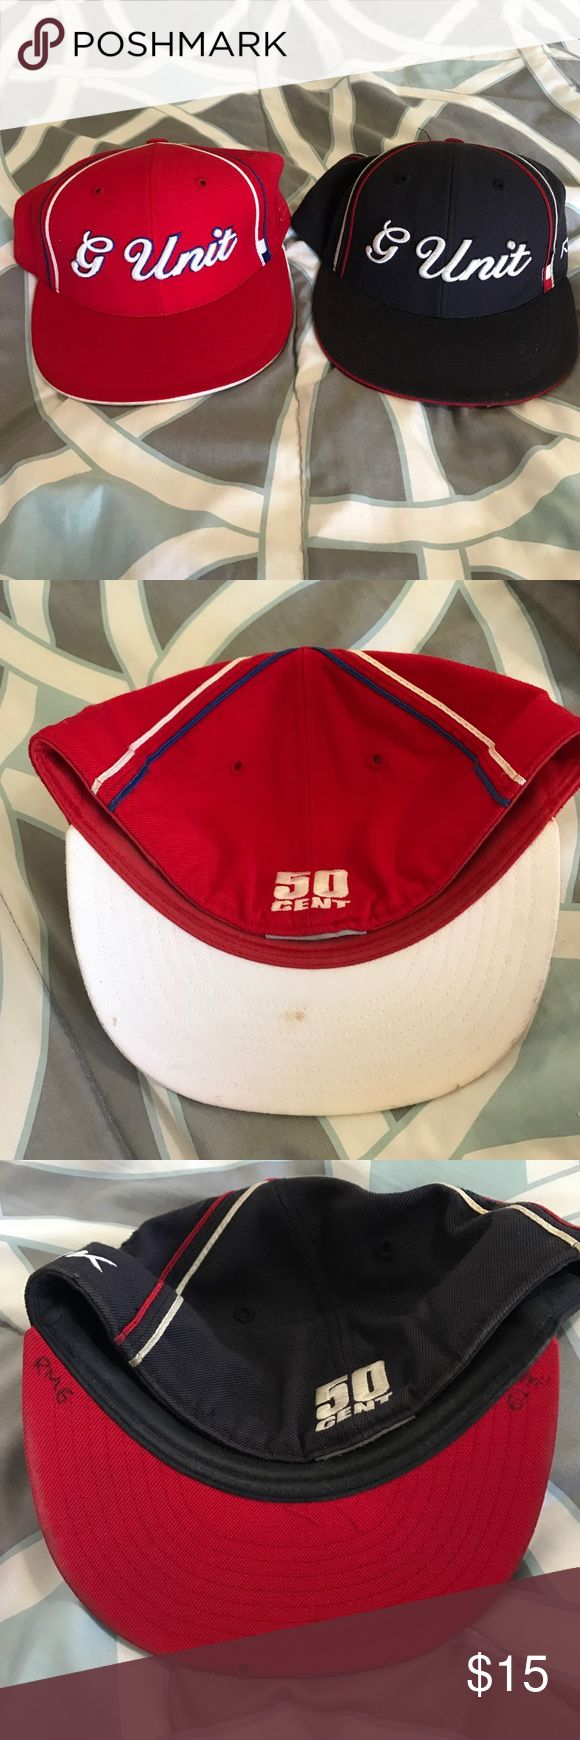 G unit hats 2 50 cent G unit hats.both good condition, blue one a little more worn that the red one. Red is sz 7 5/8 and blue is sz 7 1/2. Please see pics! Reebok Accessories Hats